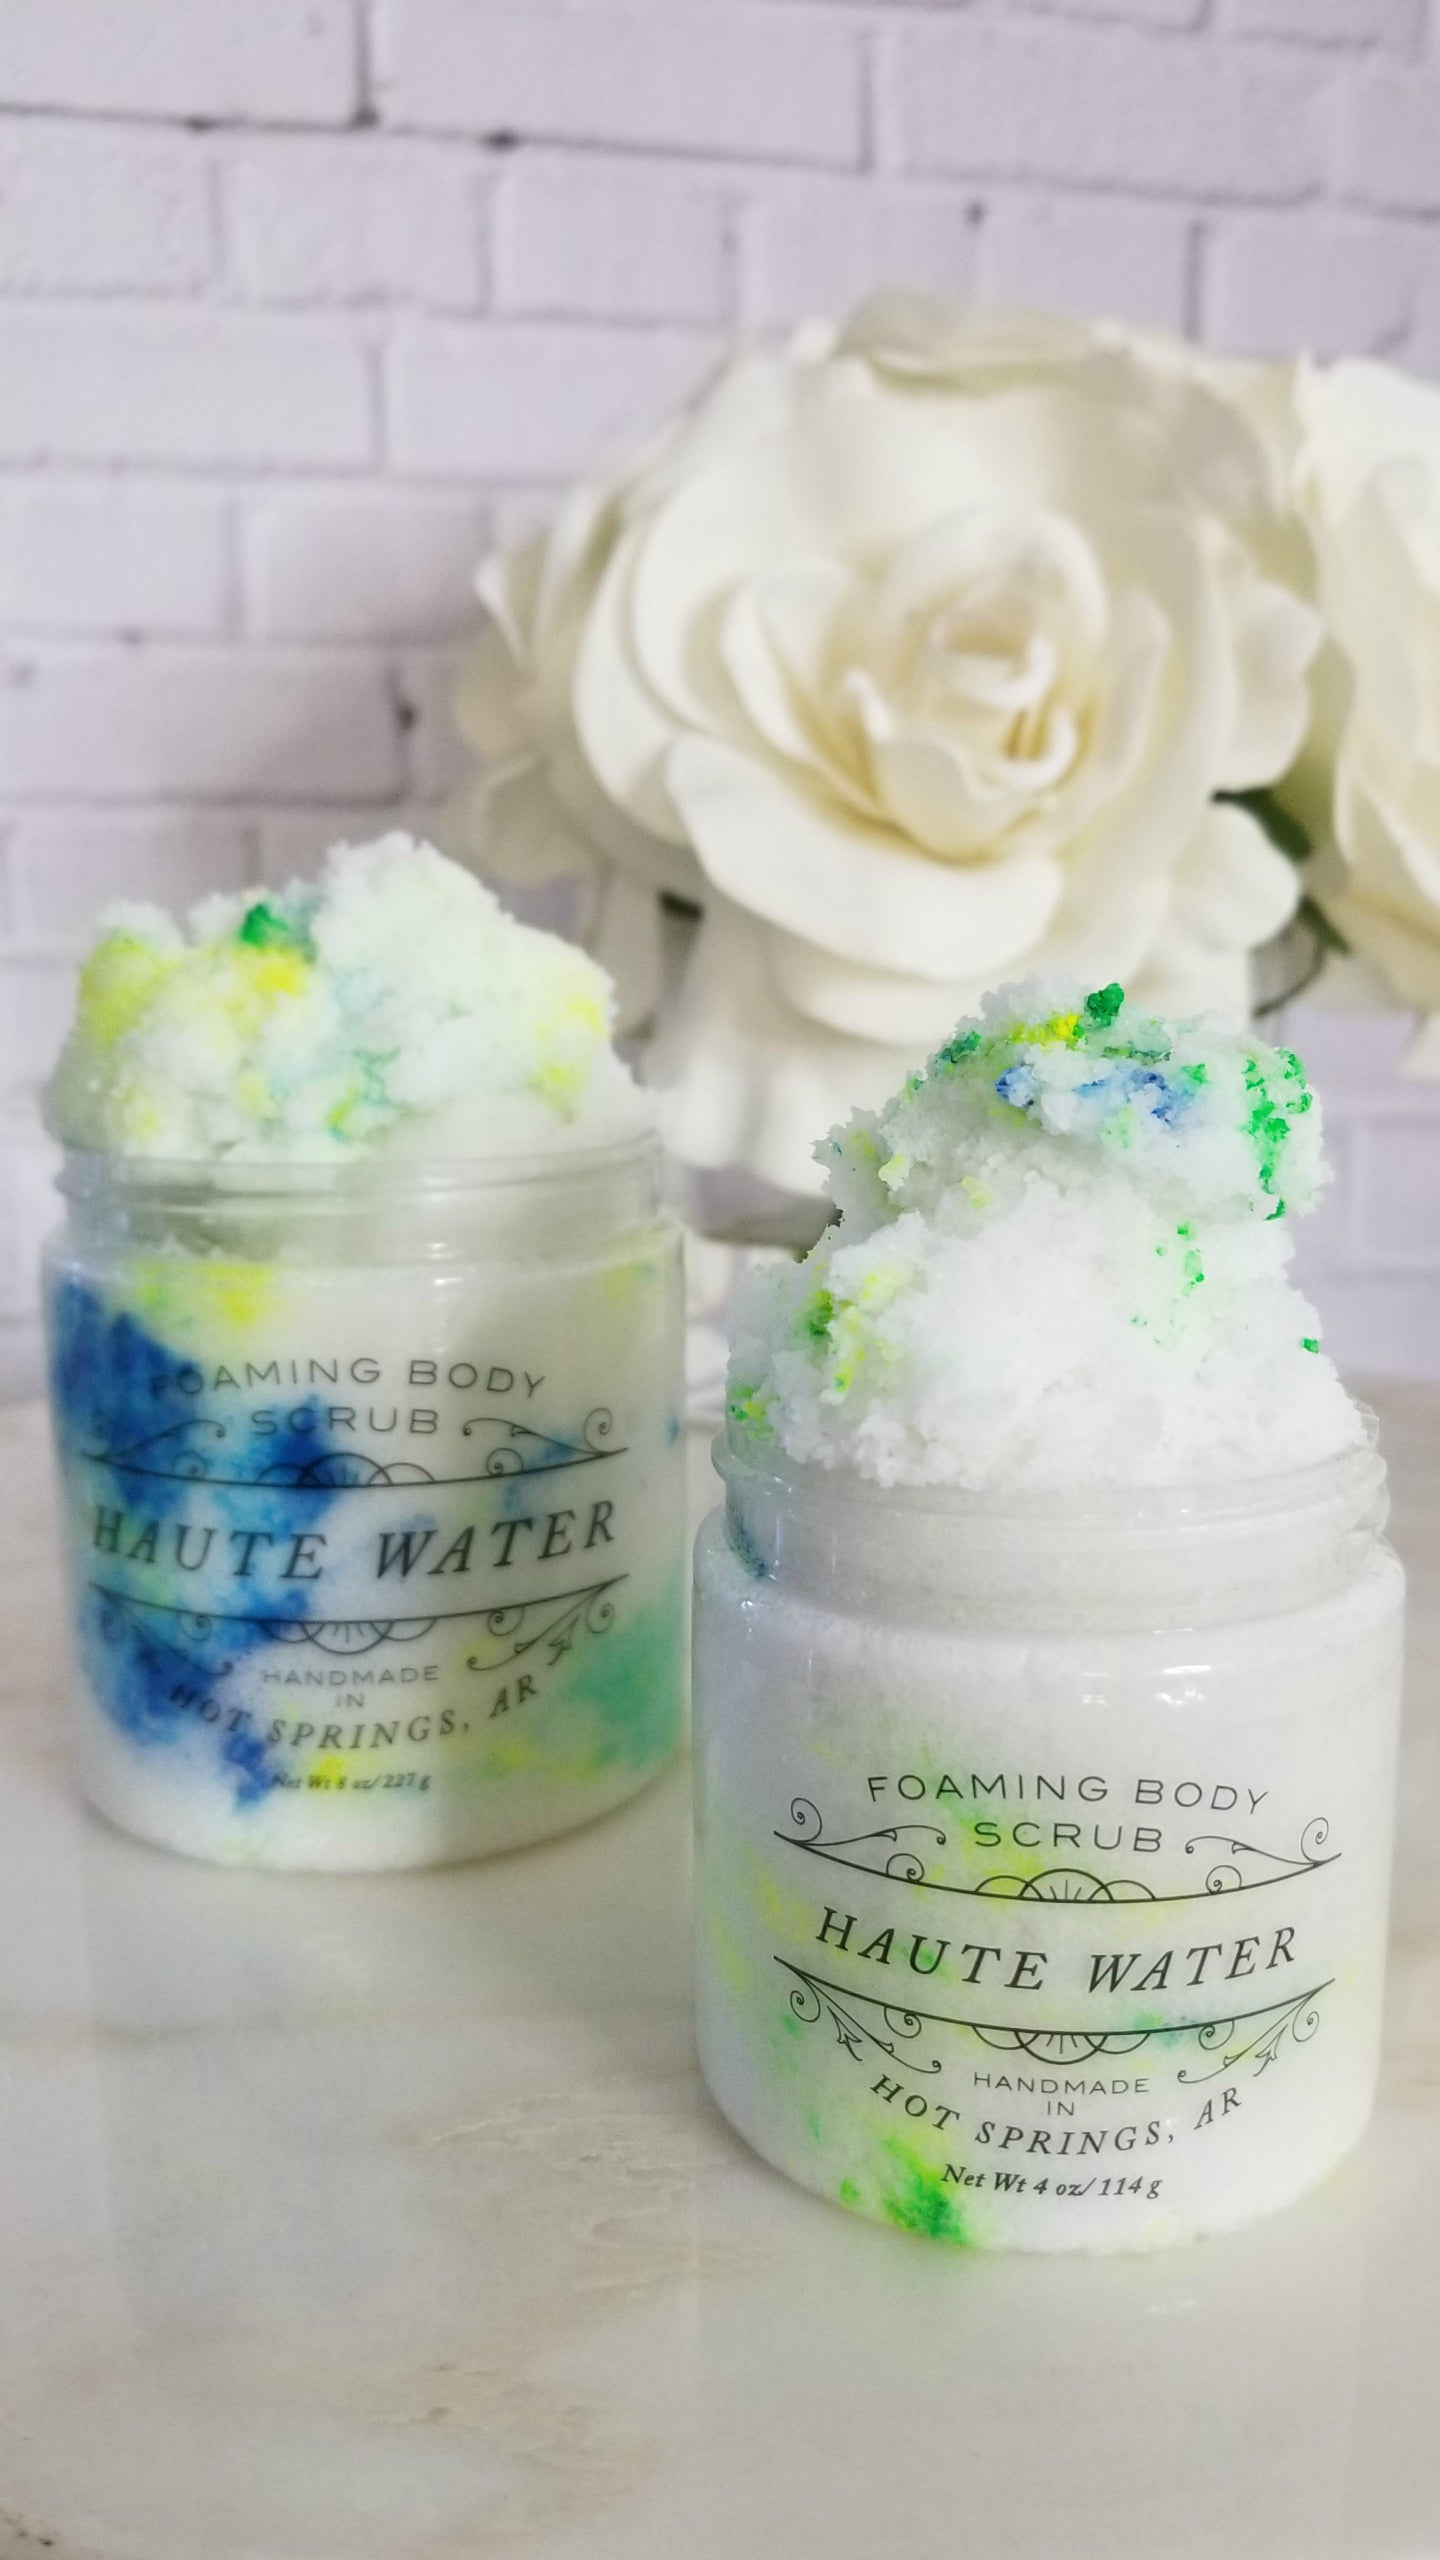 Haute Water Sugar Scrub